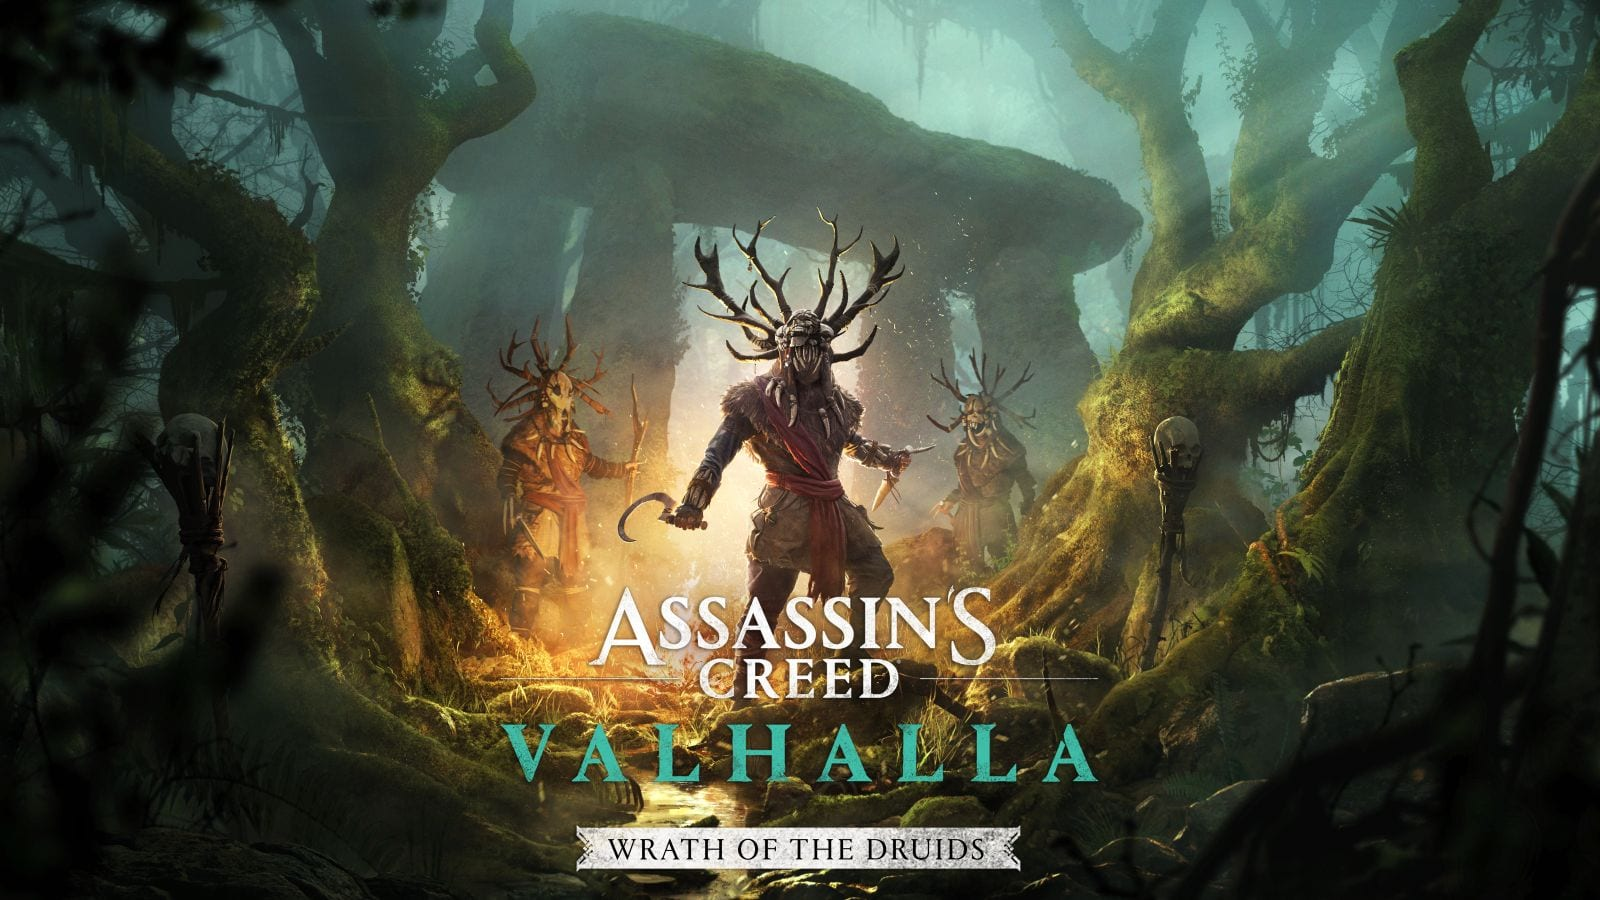 Yule Be Tiding For Good Joy With Two Seasons Of Free Assassin S Creed Valhalla Dlc Plus Additional Paid Expansions Gaming Trend